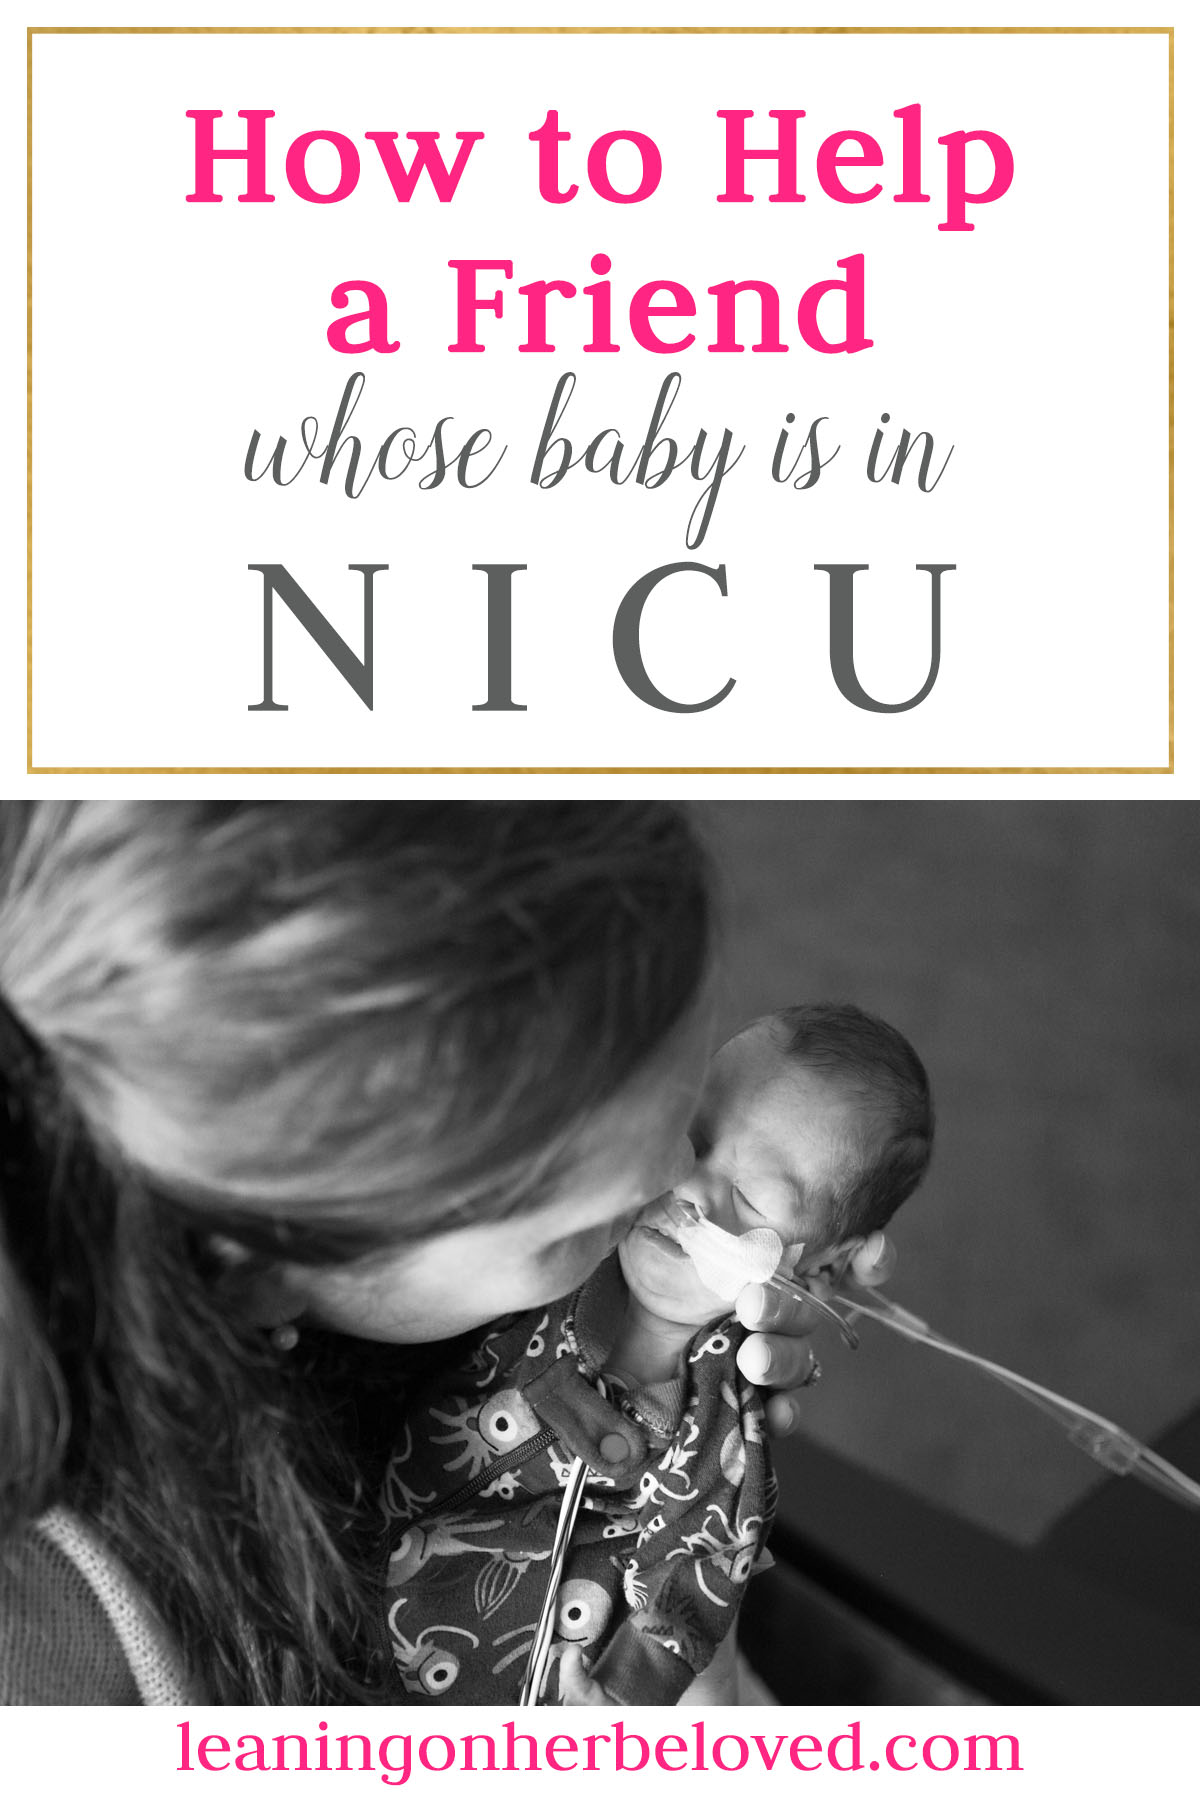 4 ways to help a friend who has a baby in the NICU | #NICU baby | Help a friend | Healing